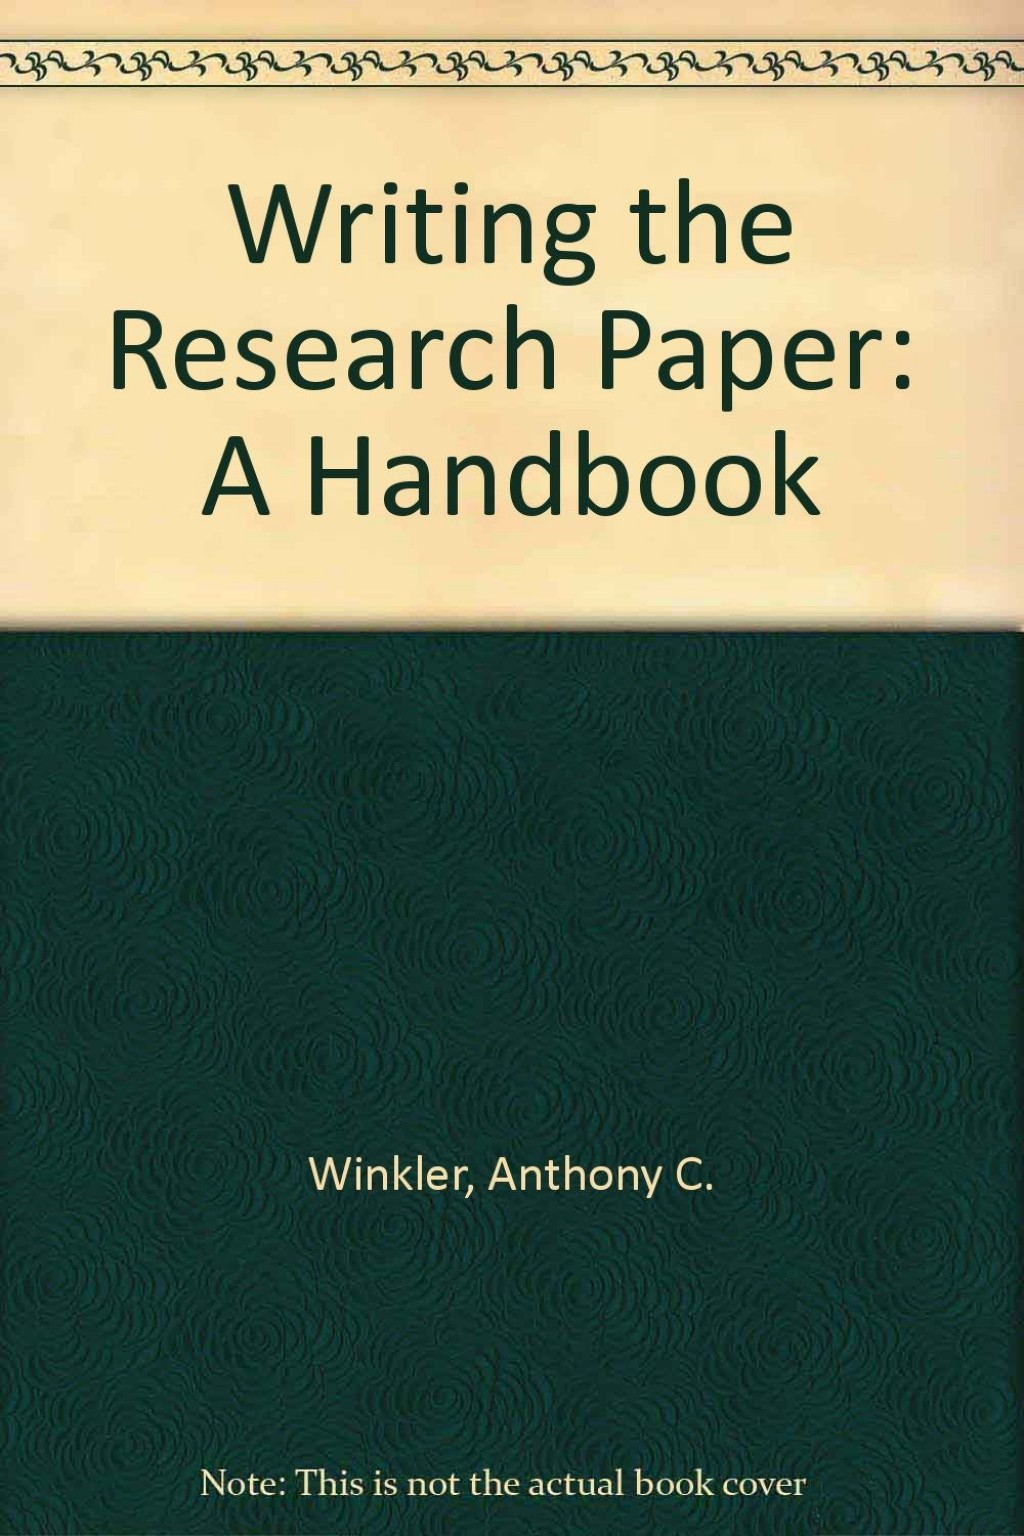 001 Research Paper 71n0iwptm6l Writing The Wonderful A Handbook 8th Edition Pdf Large